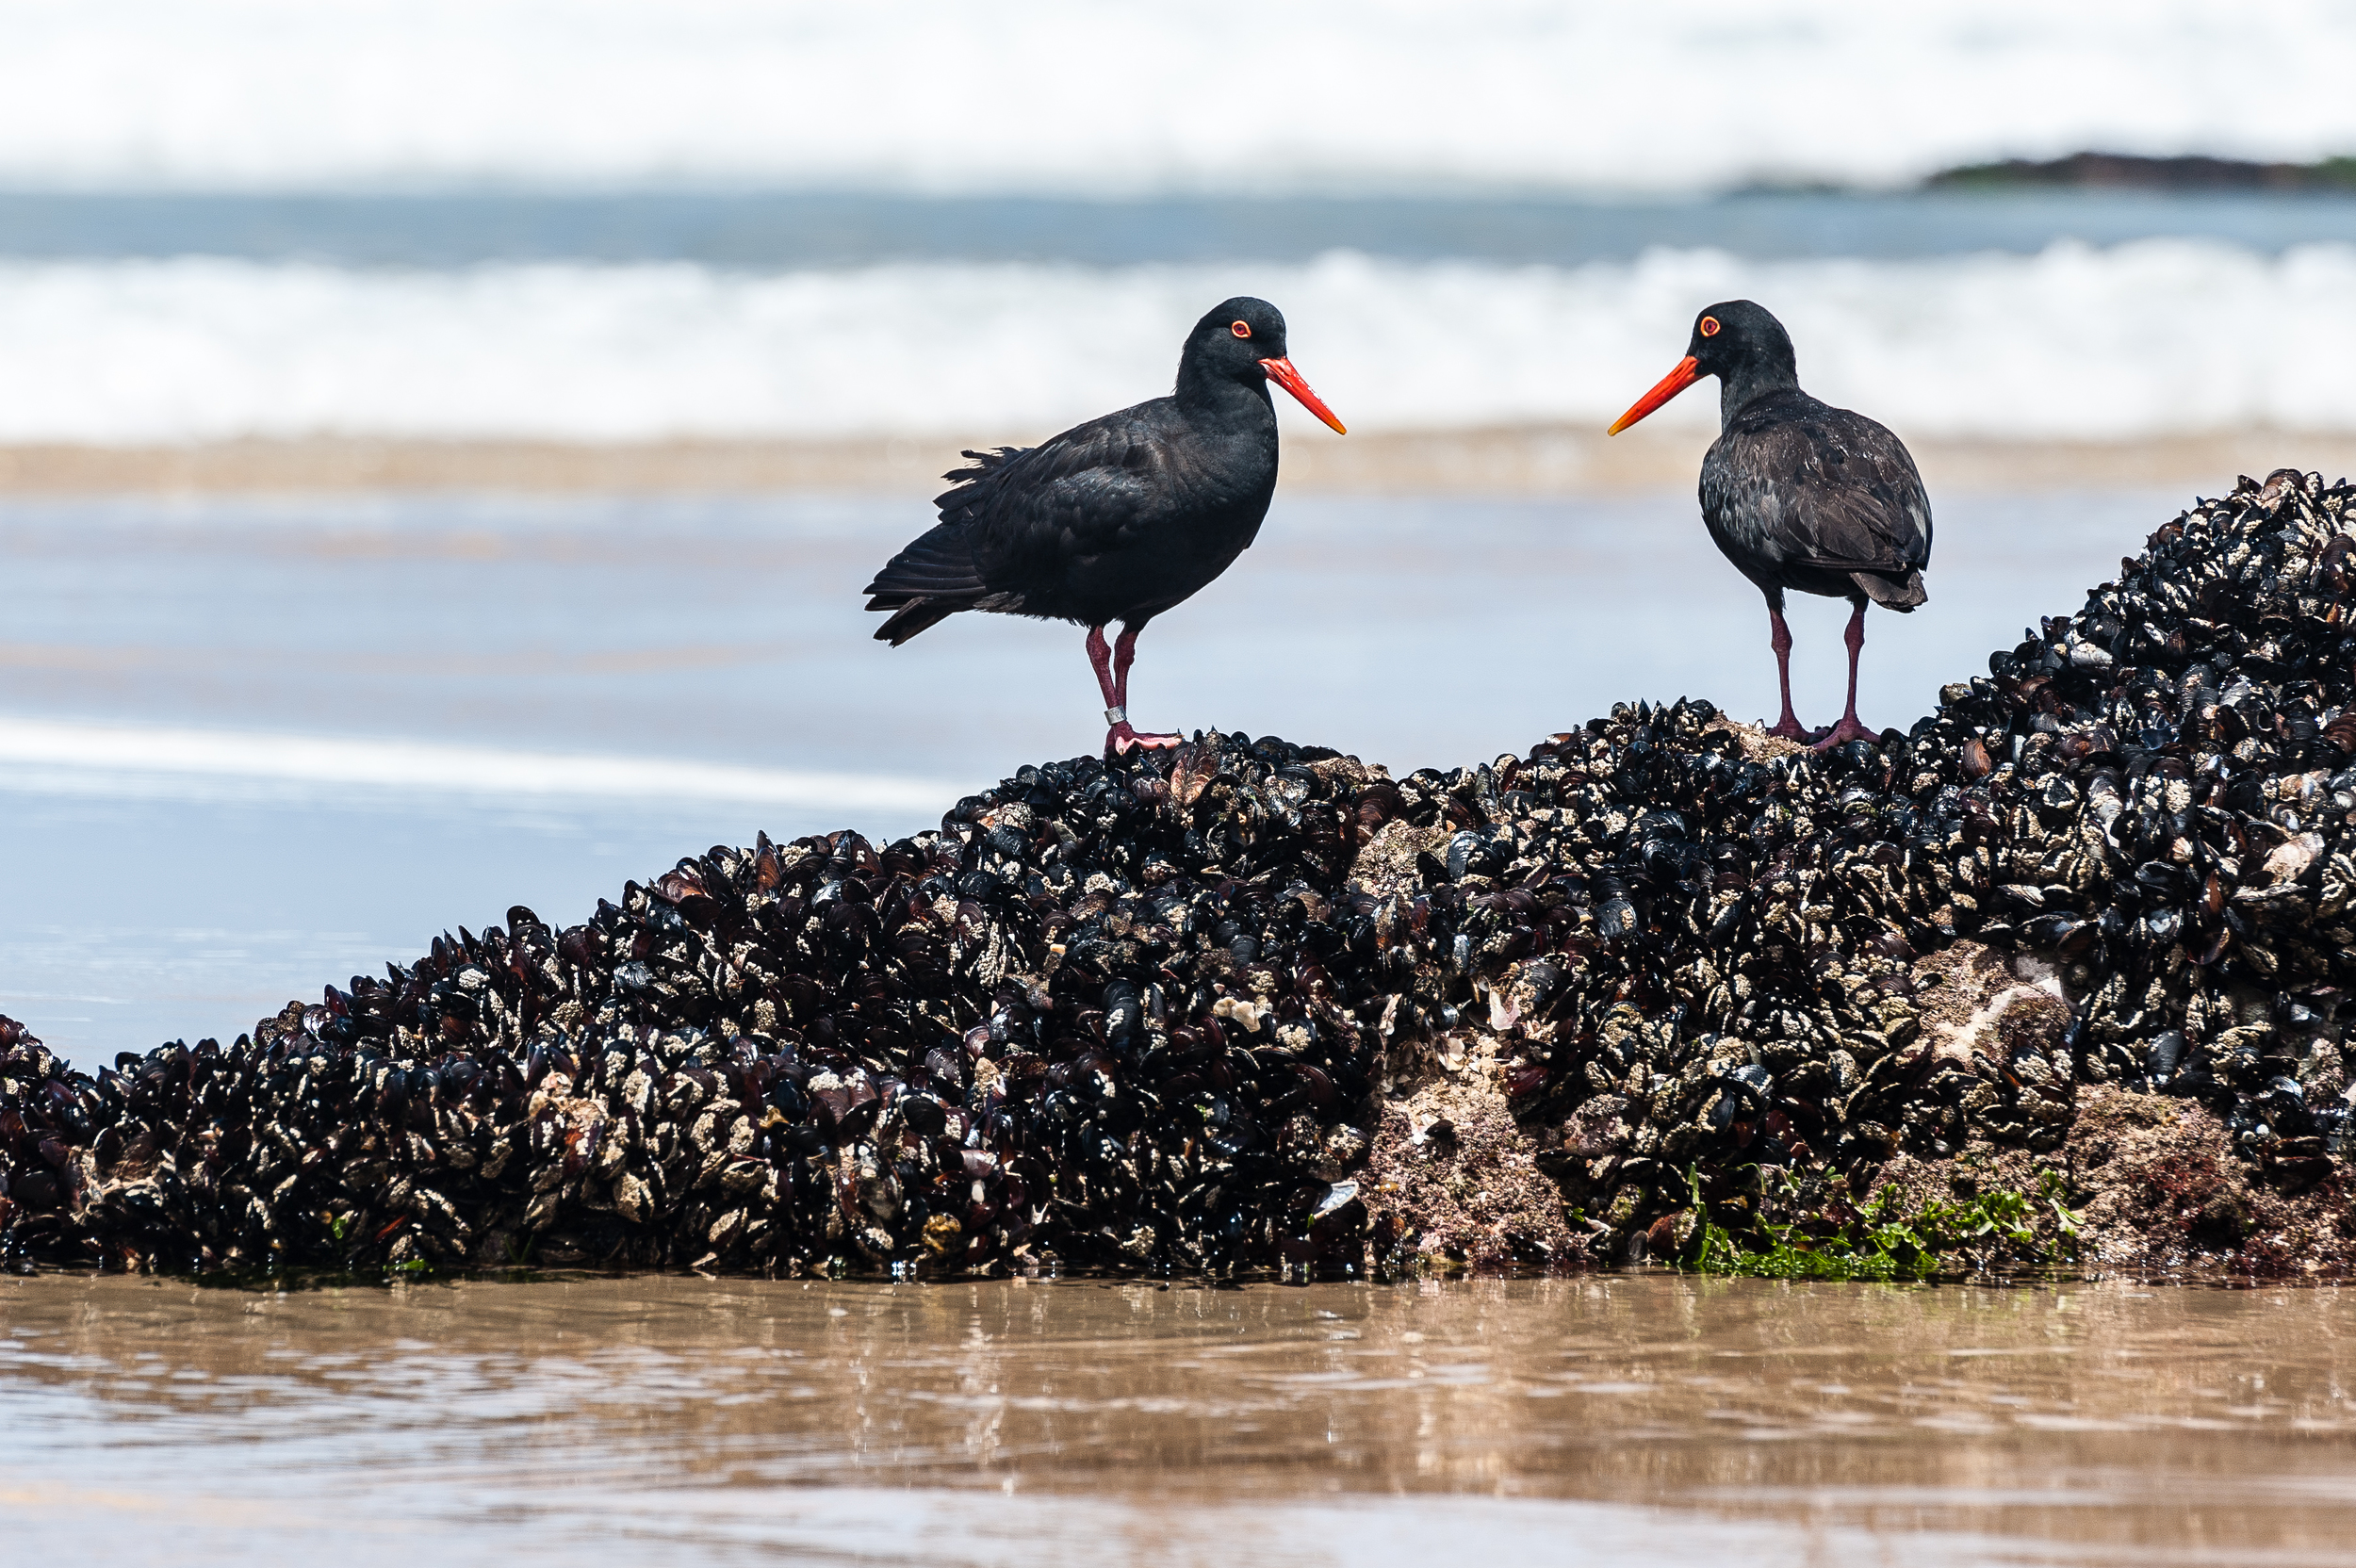 Black Oyster Catcher, Nature Valley, South Africa